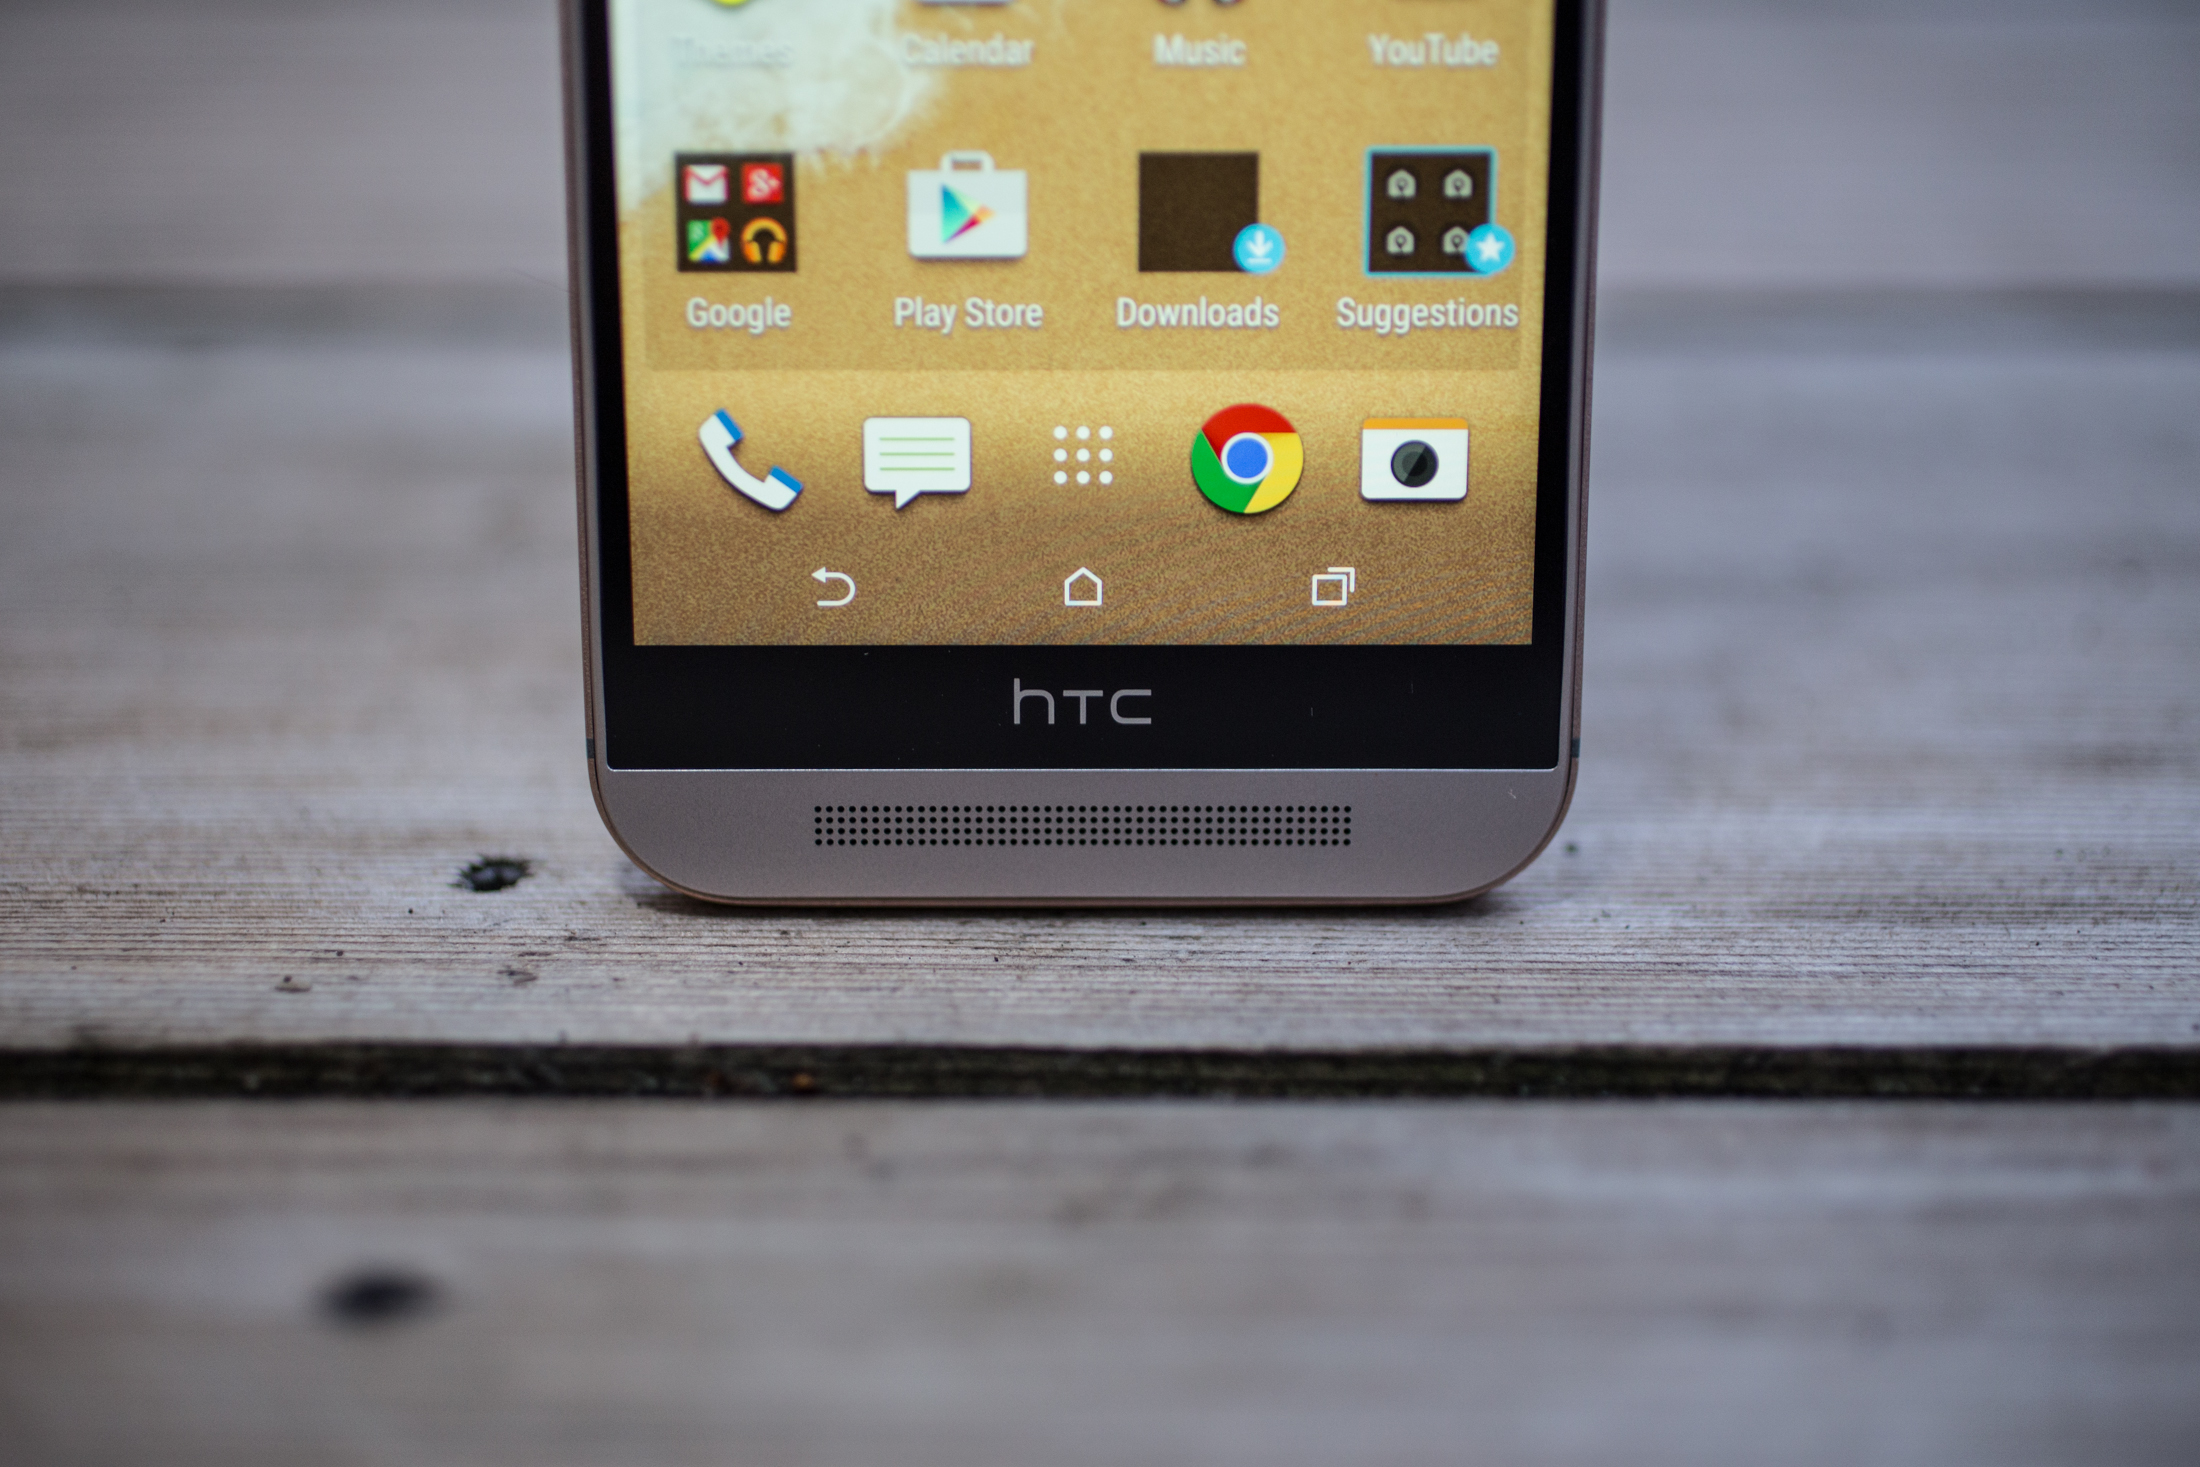 htc-one-m9-product-3.jpg